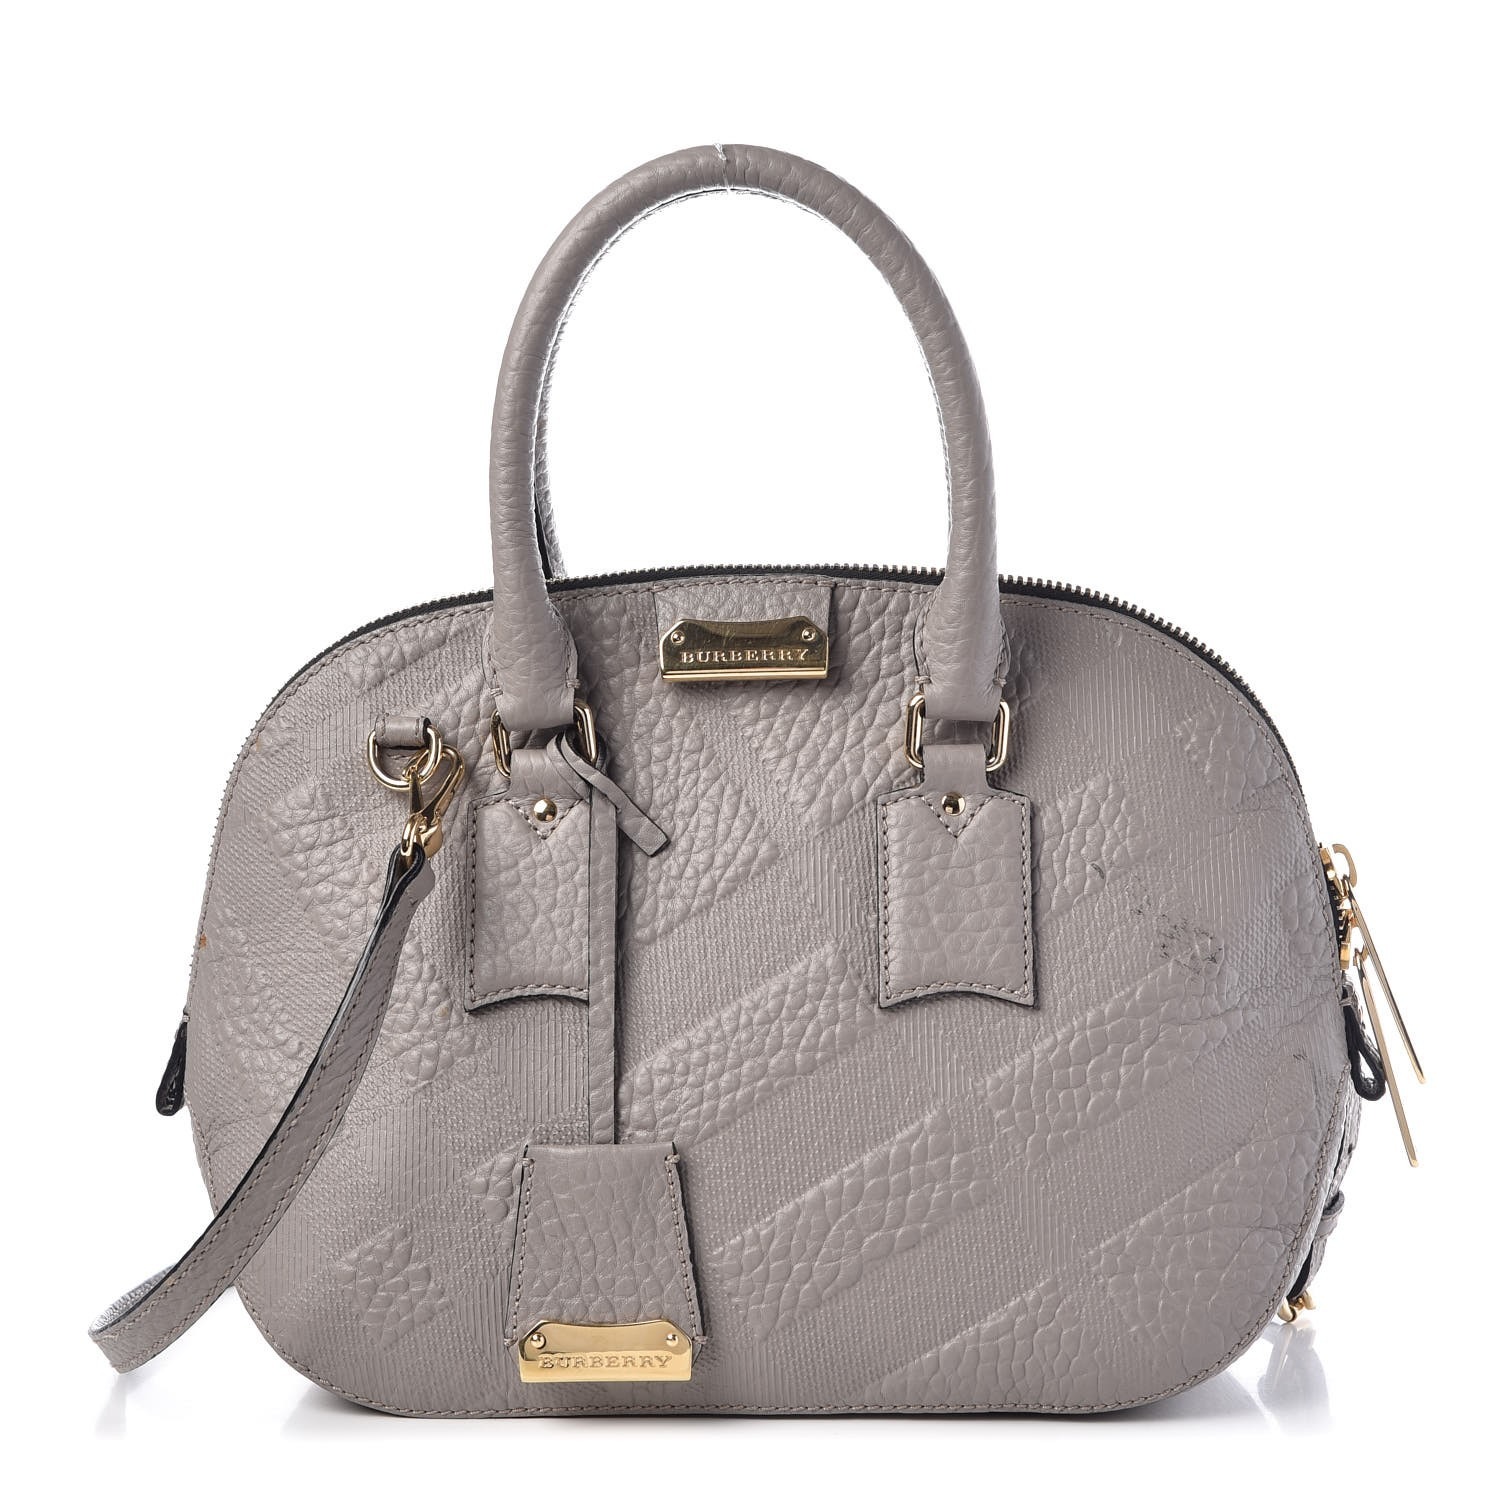 7a9e7ab64aa1 BURBERRY Heritage Grain Check Small Orchard Bowling Bag Pale Grey 347335